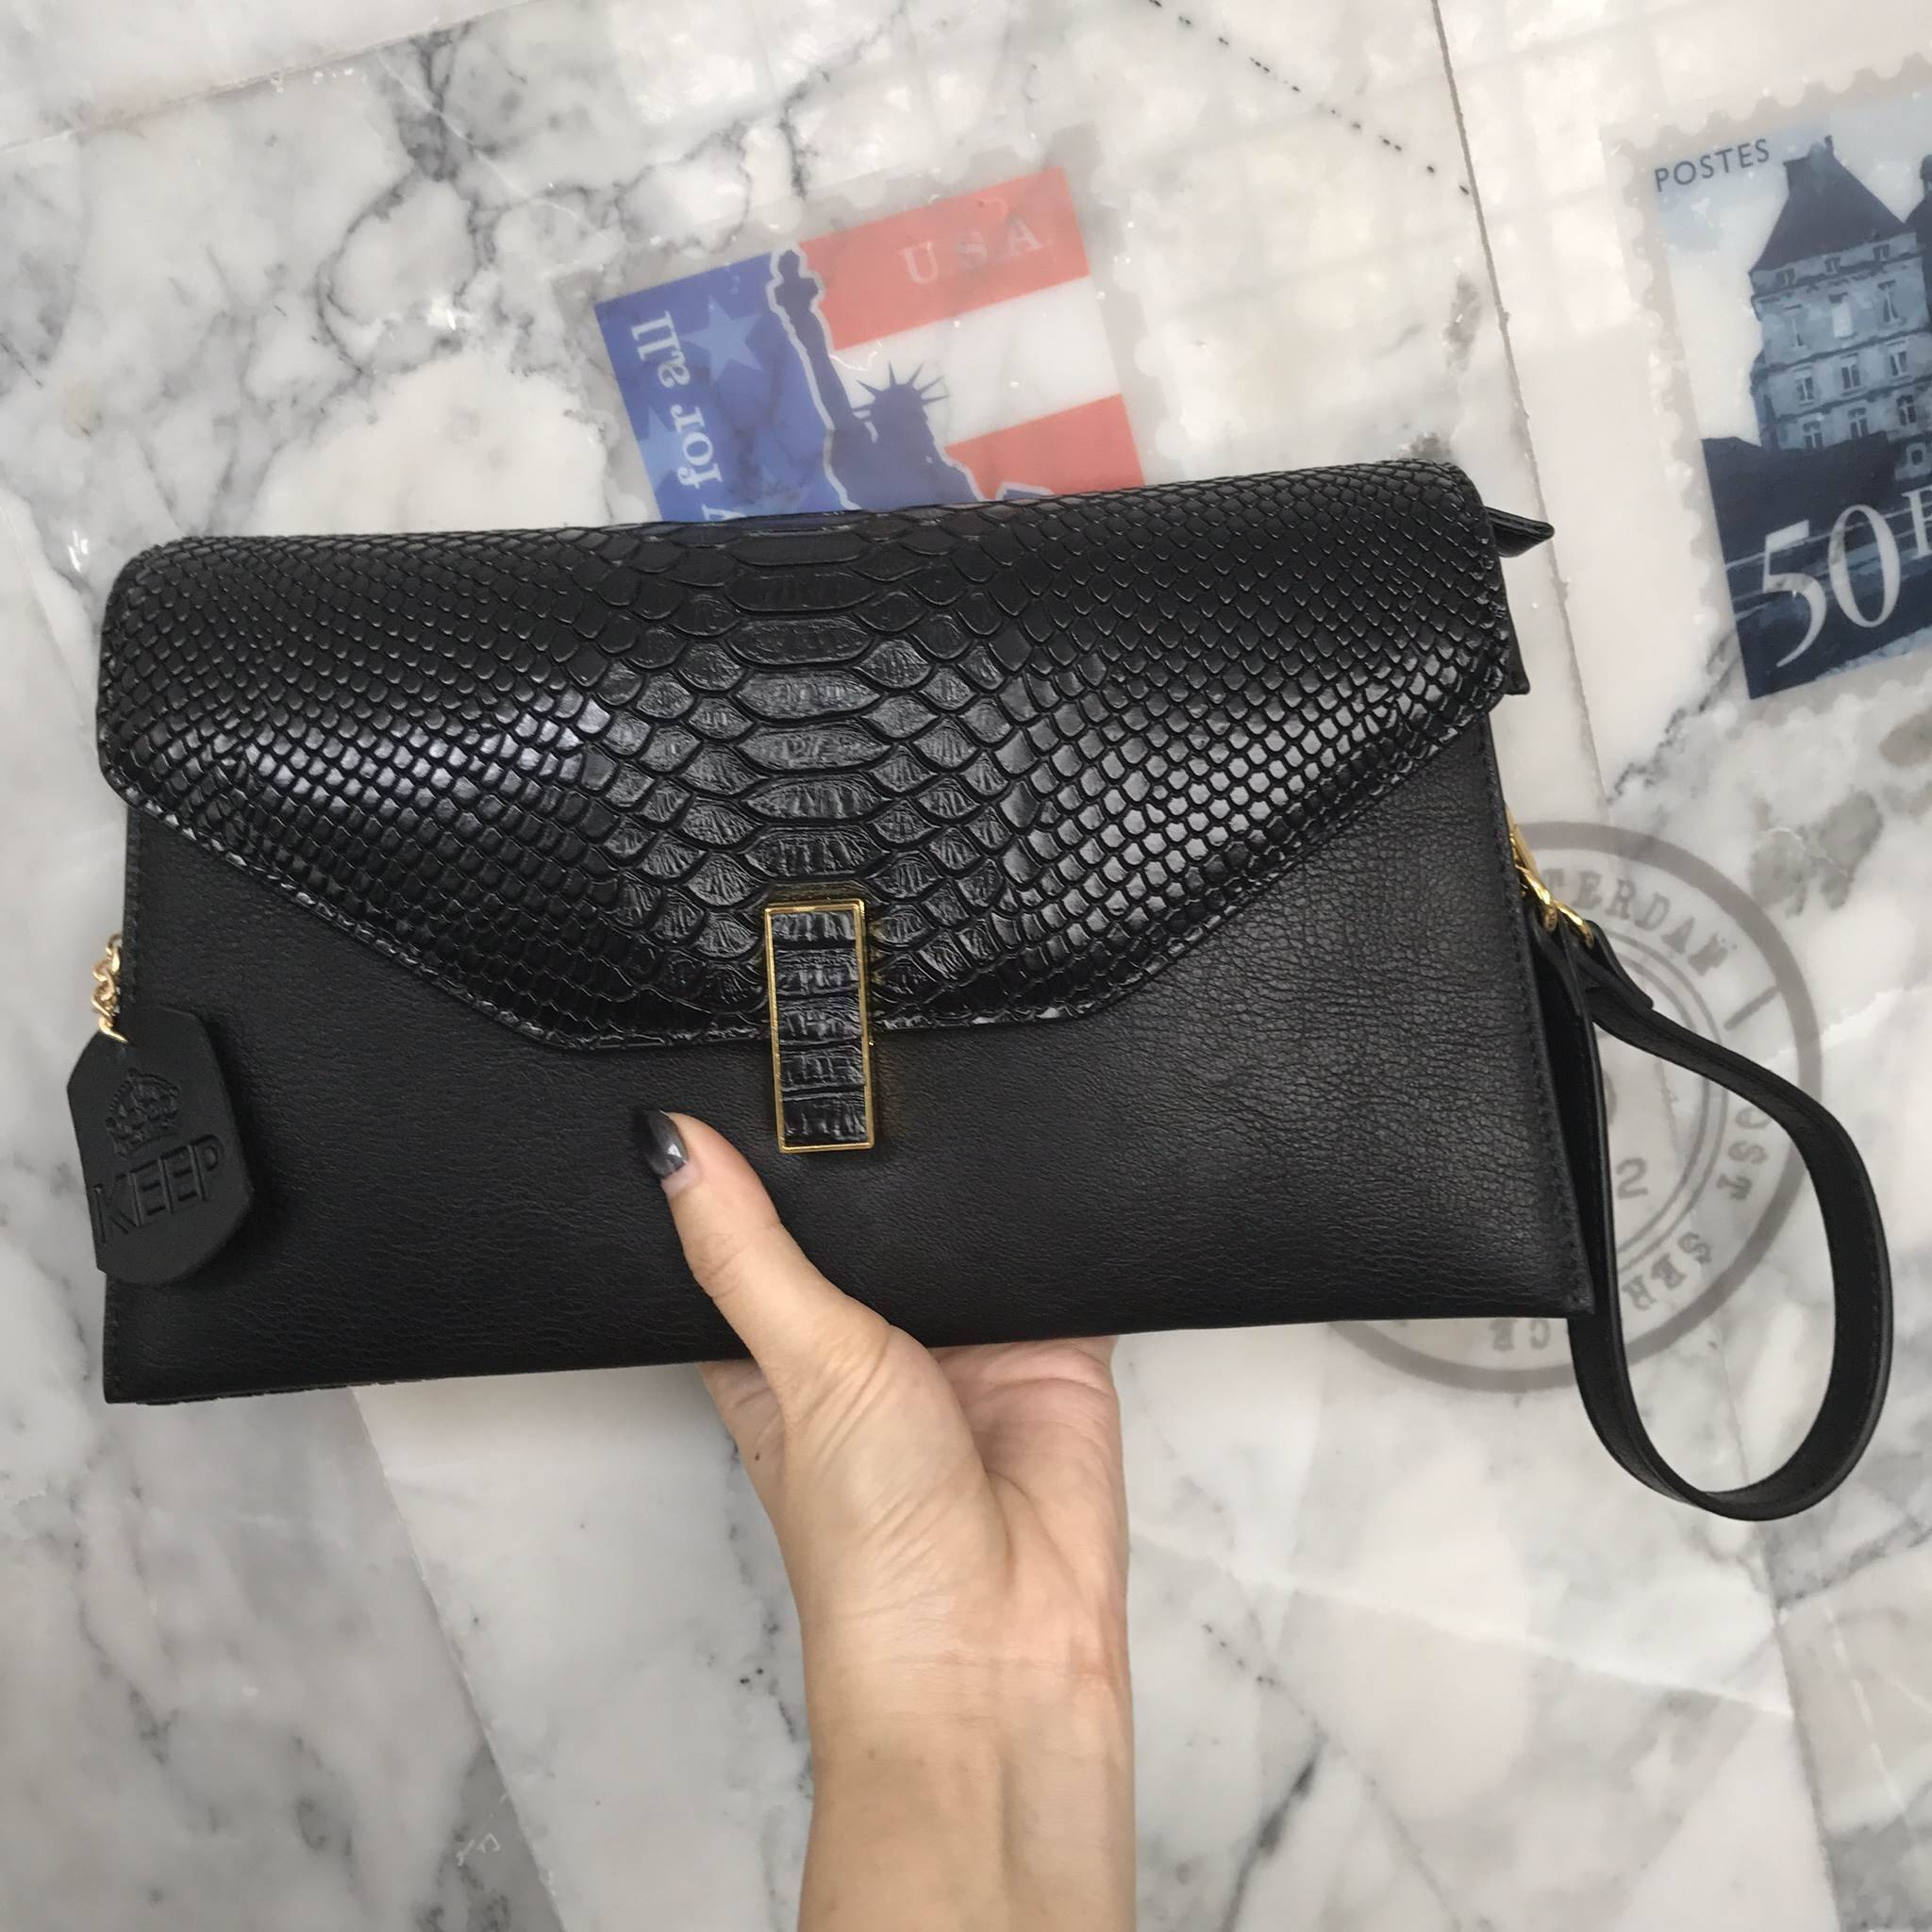 KEEP Clutch bag with strap 2017